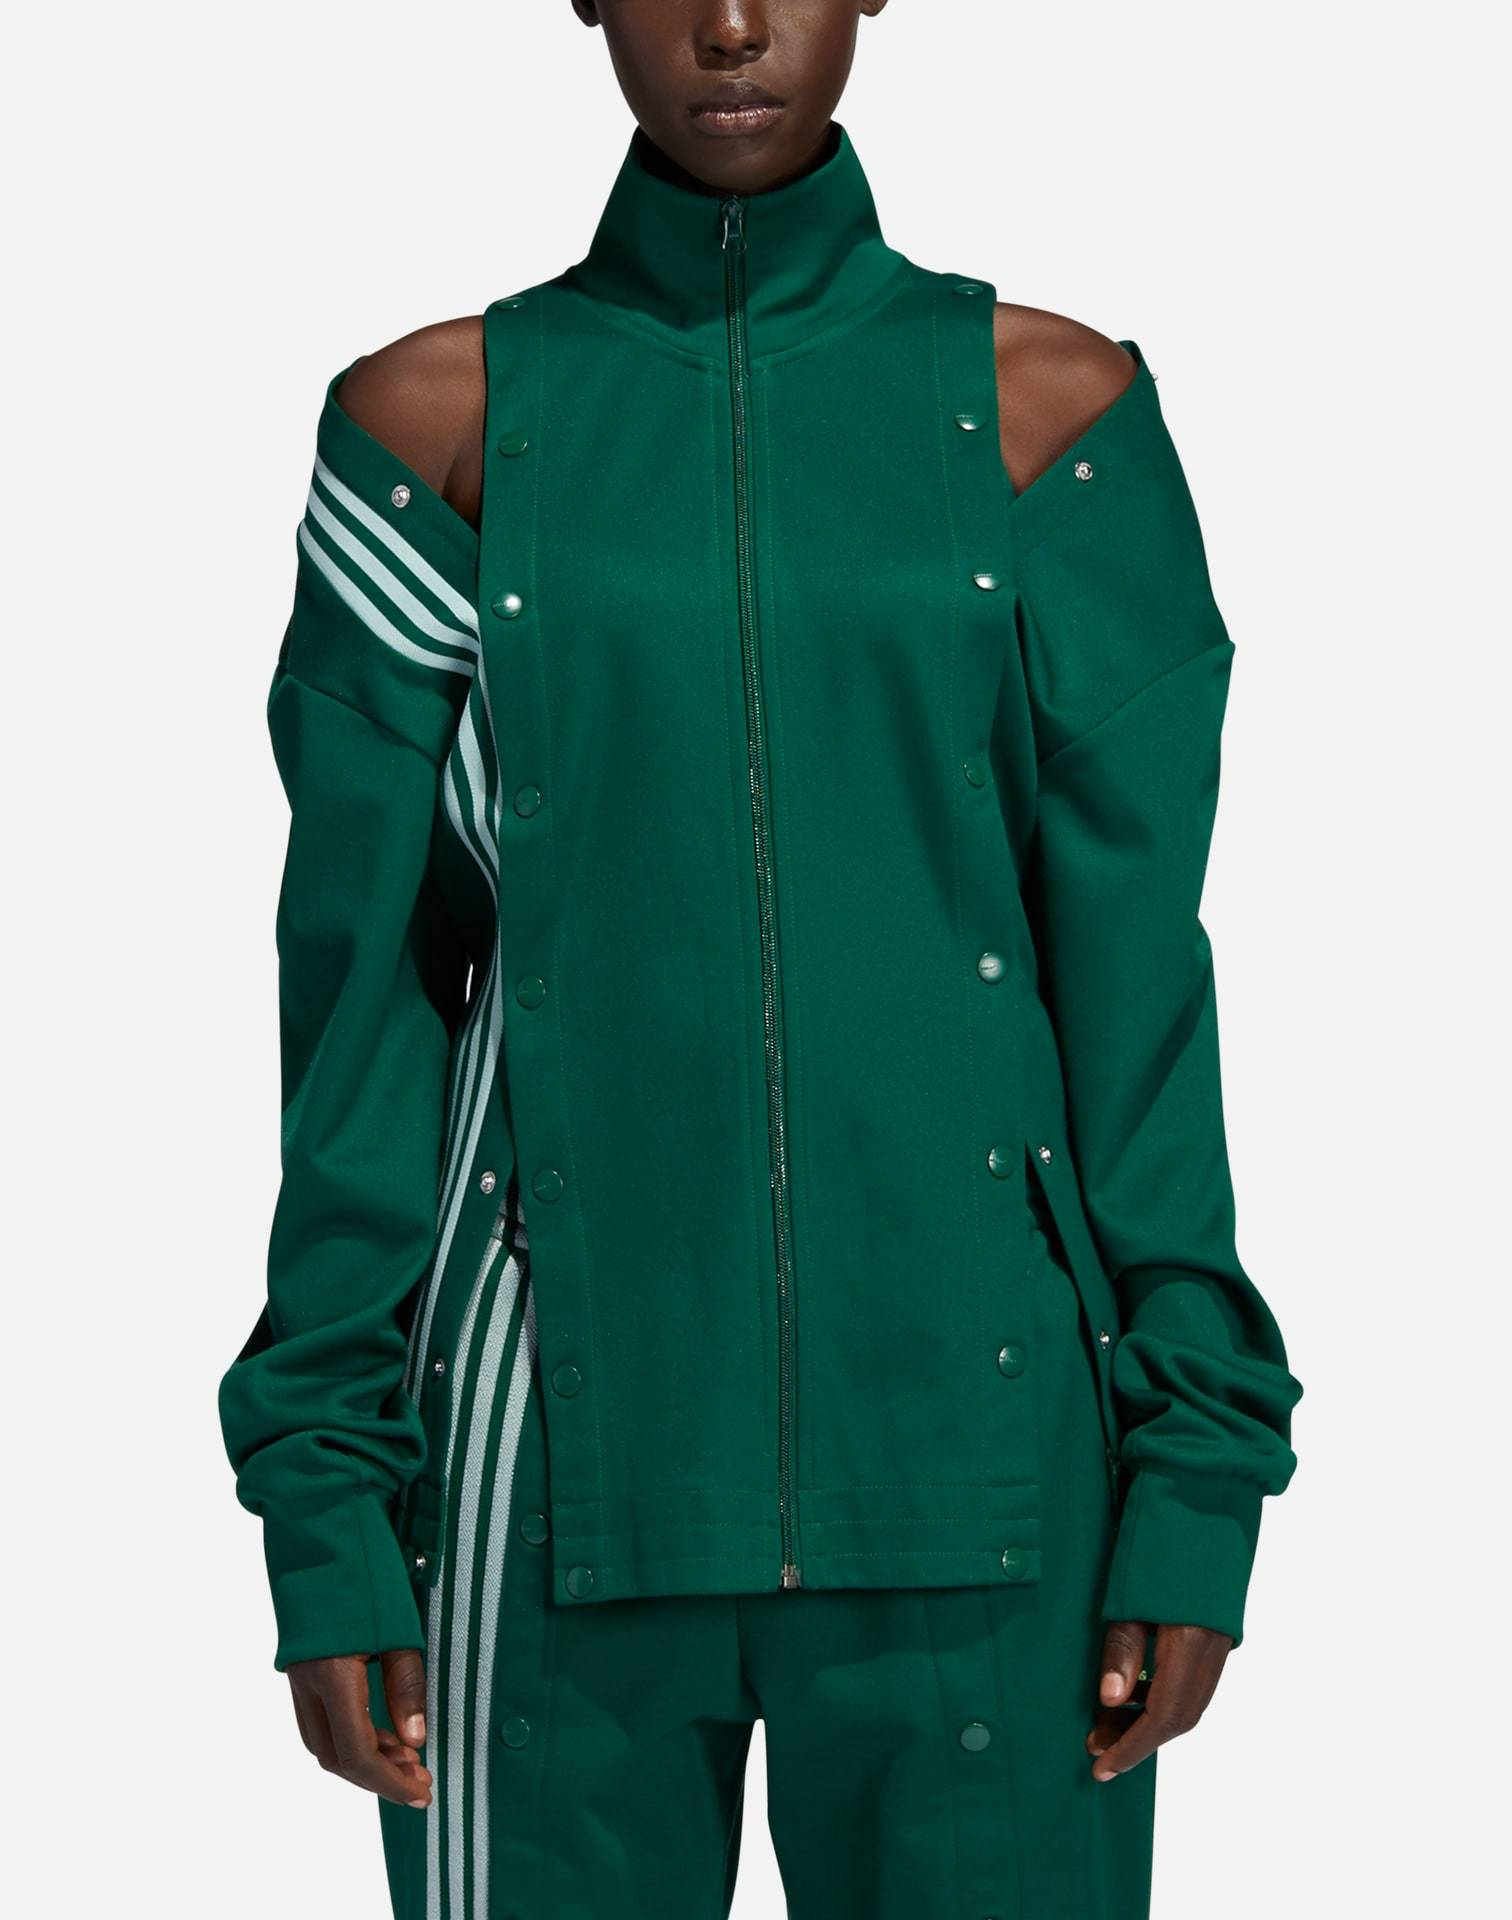 Adidas IVY PARK 3-STRIPES TRACK JACKET